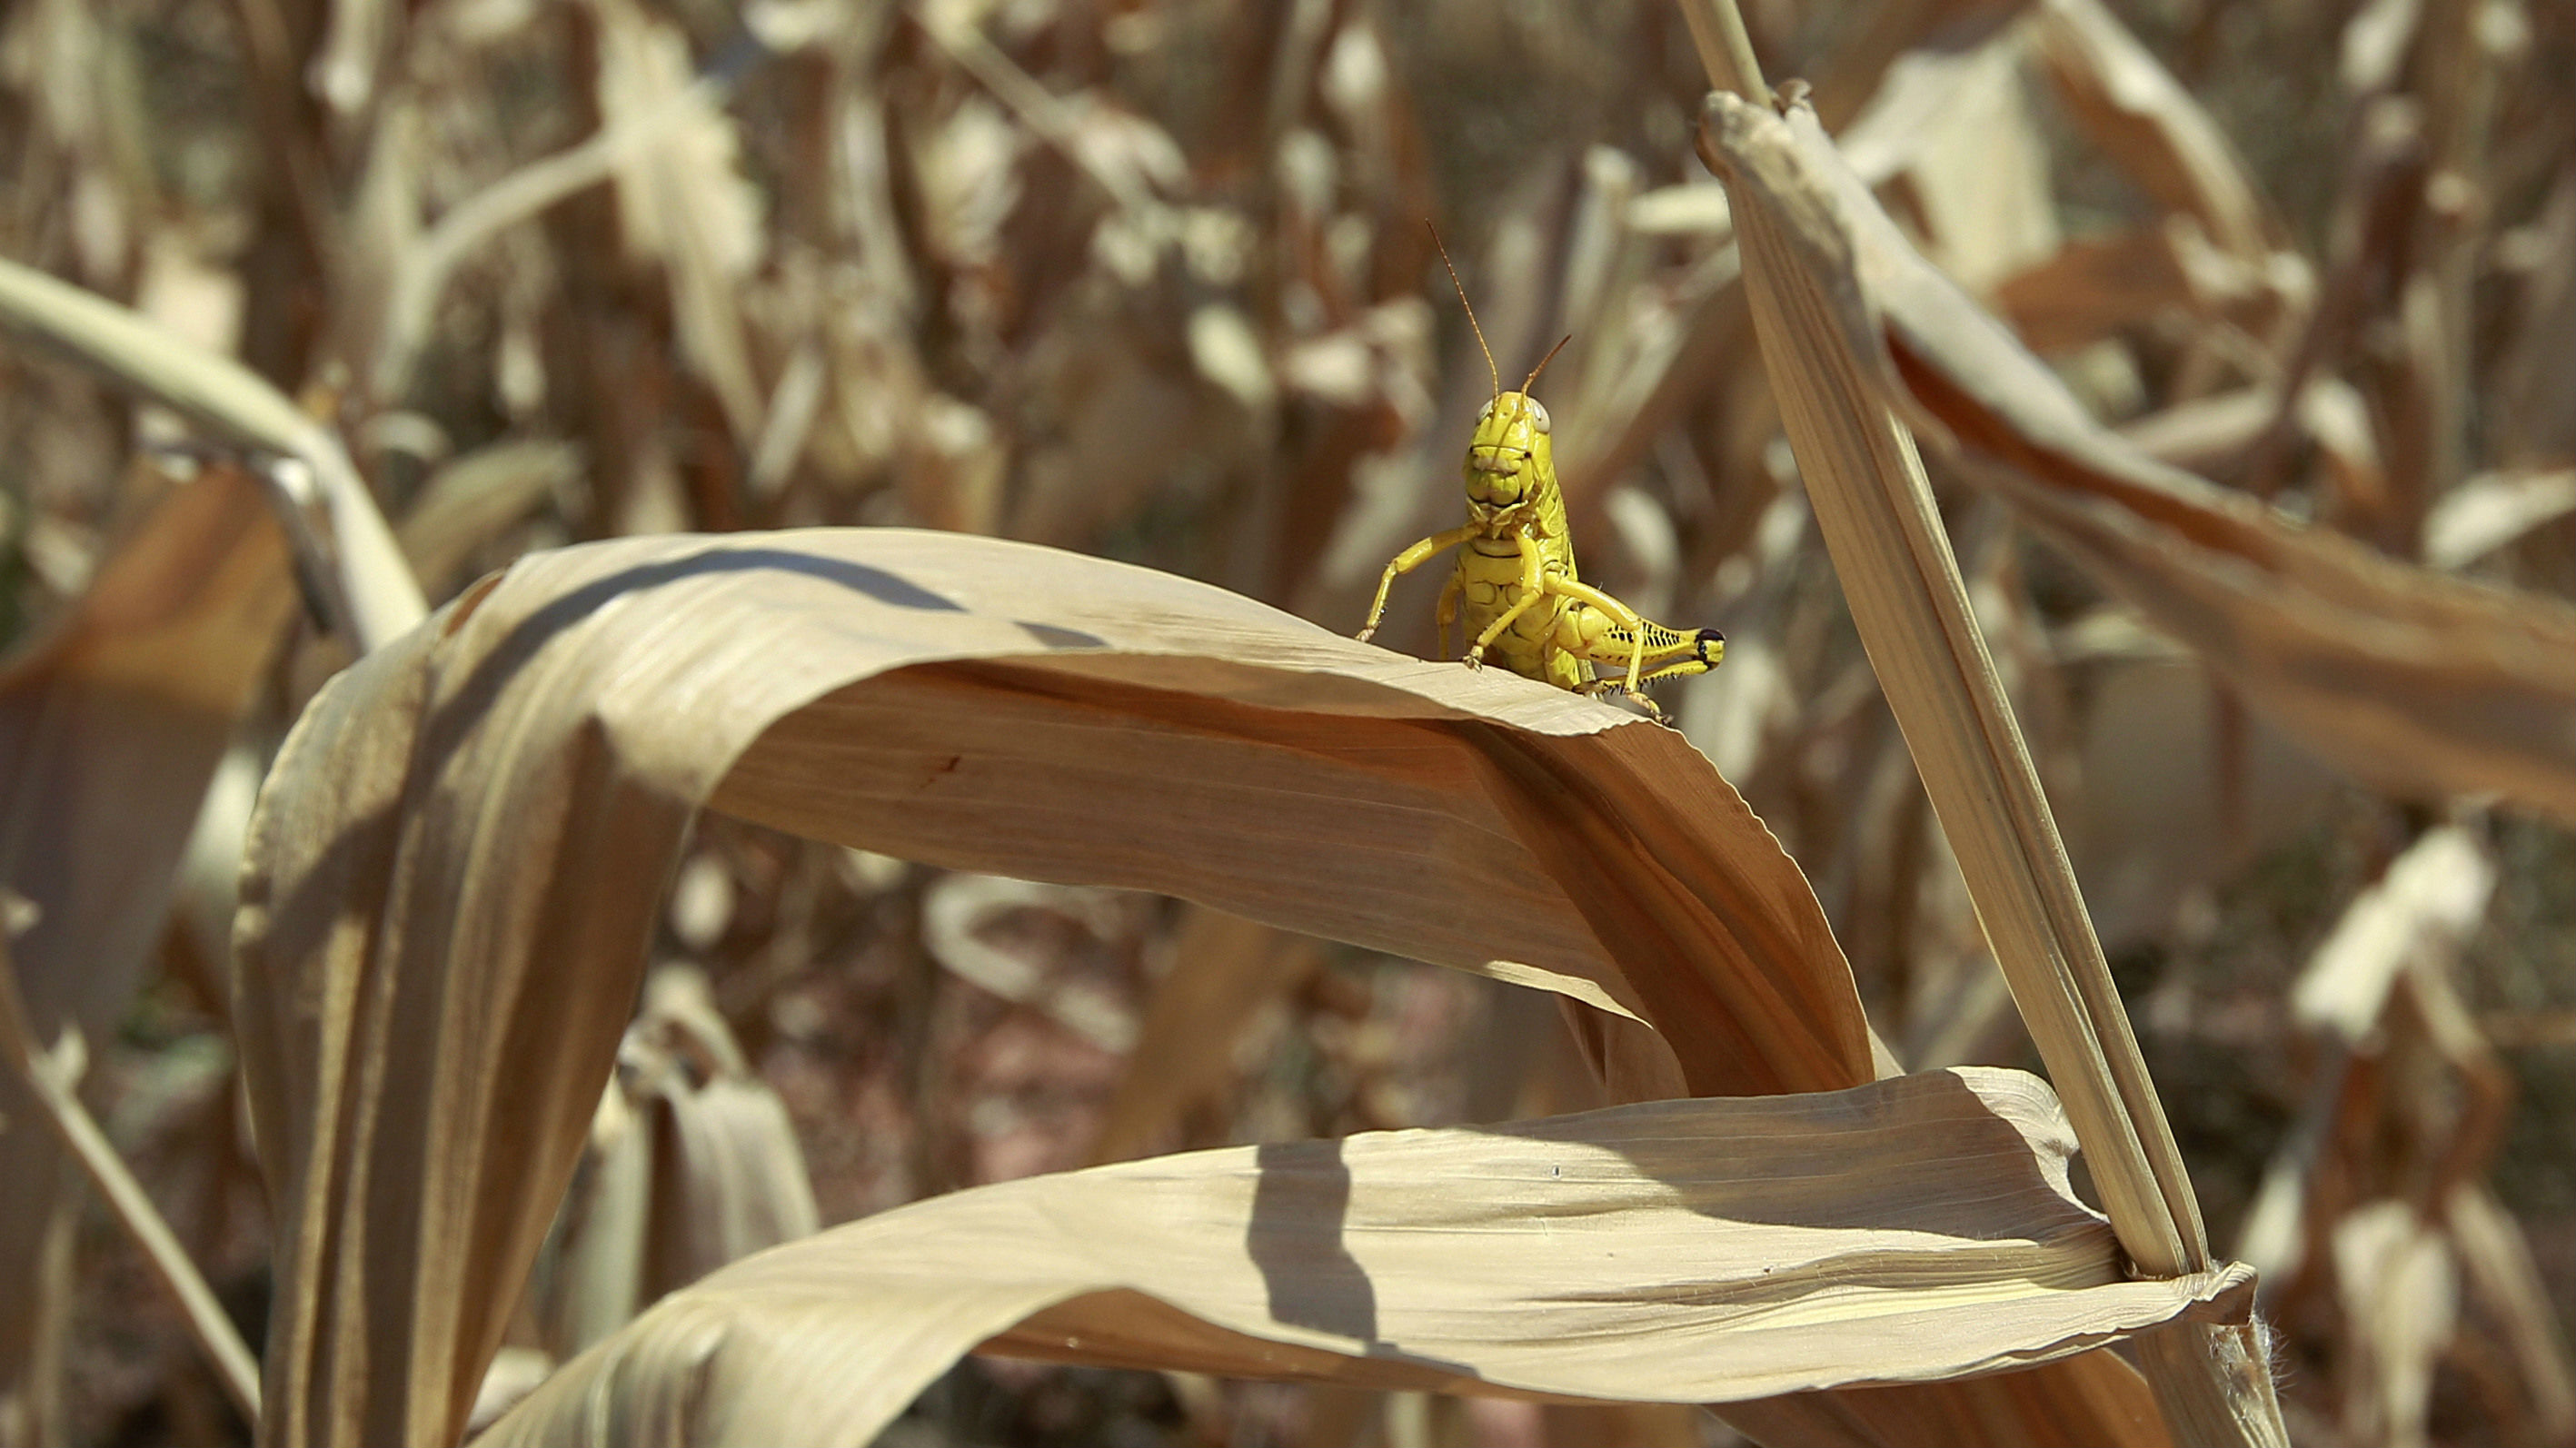 In this Thursday, July 19, 2012, file photo, a grasshopper sits on a dried up leaf on a stalk of corn in a field in Edmond, Okla. Spring rains fired up across parts of the state in May and June, but the U.S. Monthly Drought Outlook for July suggests that drought will persist or intensify across the southern half of the state and into the Panhandle.